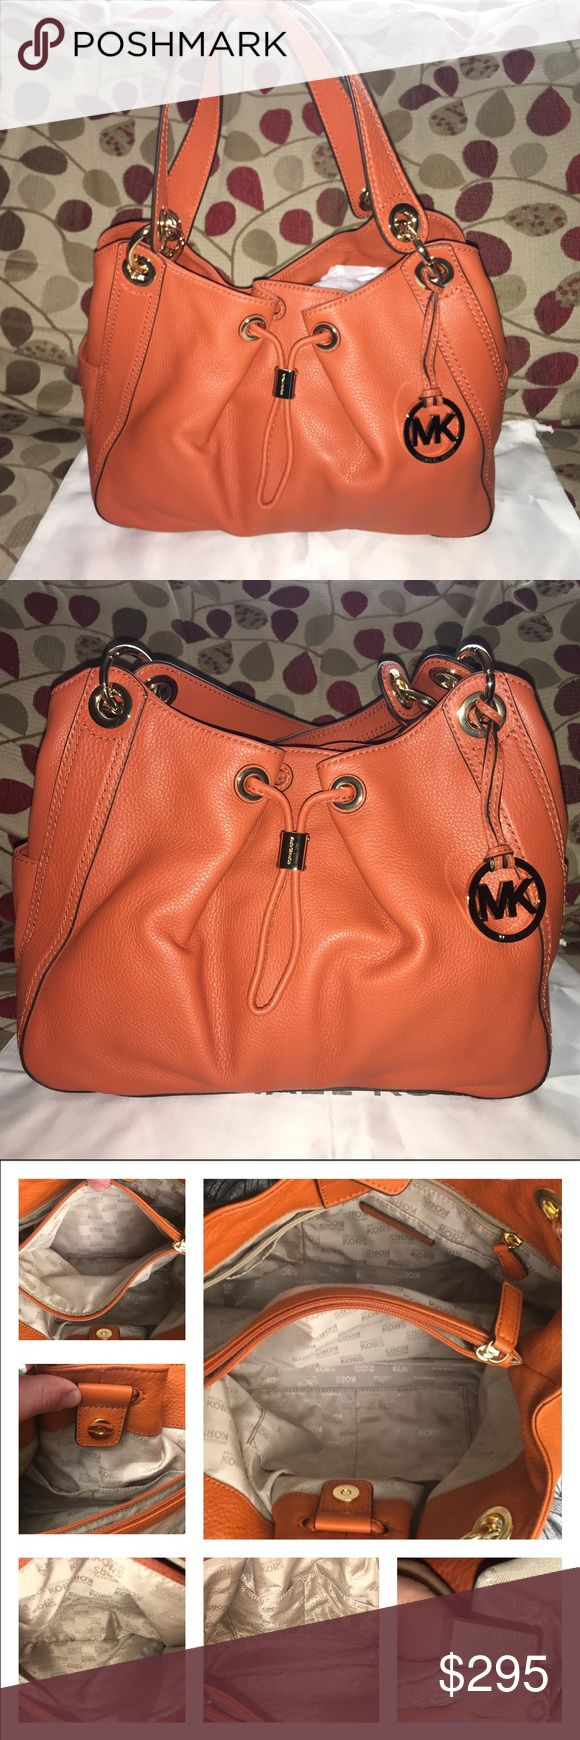 """NWOT Michael Kors Ludlow in Burnt Orange New Michael Kors Ludlow in Burnt Orange Pebbled Leather and Shiny Gold Hardware! Stunning bag for any occasion! Bag is logo lined, middle zip divider, 1 zip, multiple slip pockets, exterior has an open pocket at each end! The O rings and Drawstring accents are Gorgeous! Bag closes by magnetic snap, double handle drop is 9""""measures approx 13 x 10 x 5.5 includes dust bag! 🚫no trades price firm🚫 MICHAEL Michael Kors Bags Shoulder Bags"""